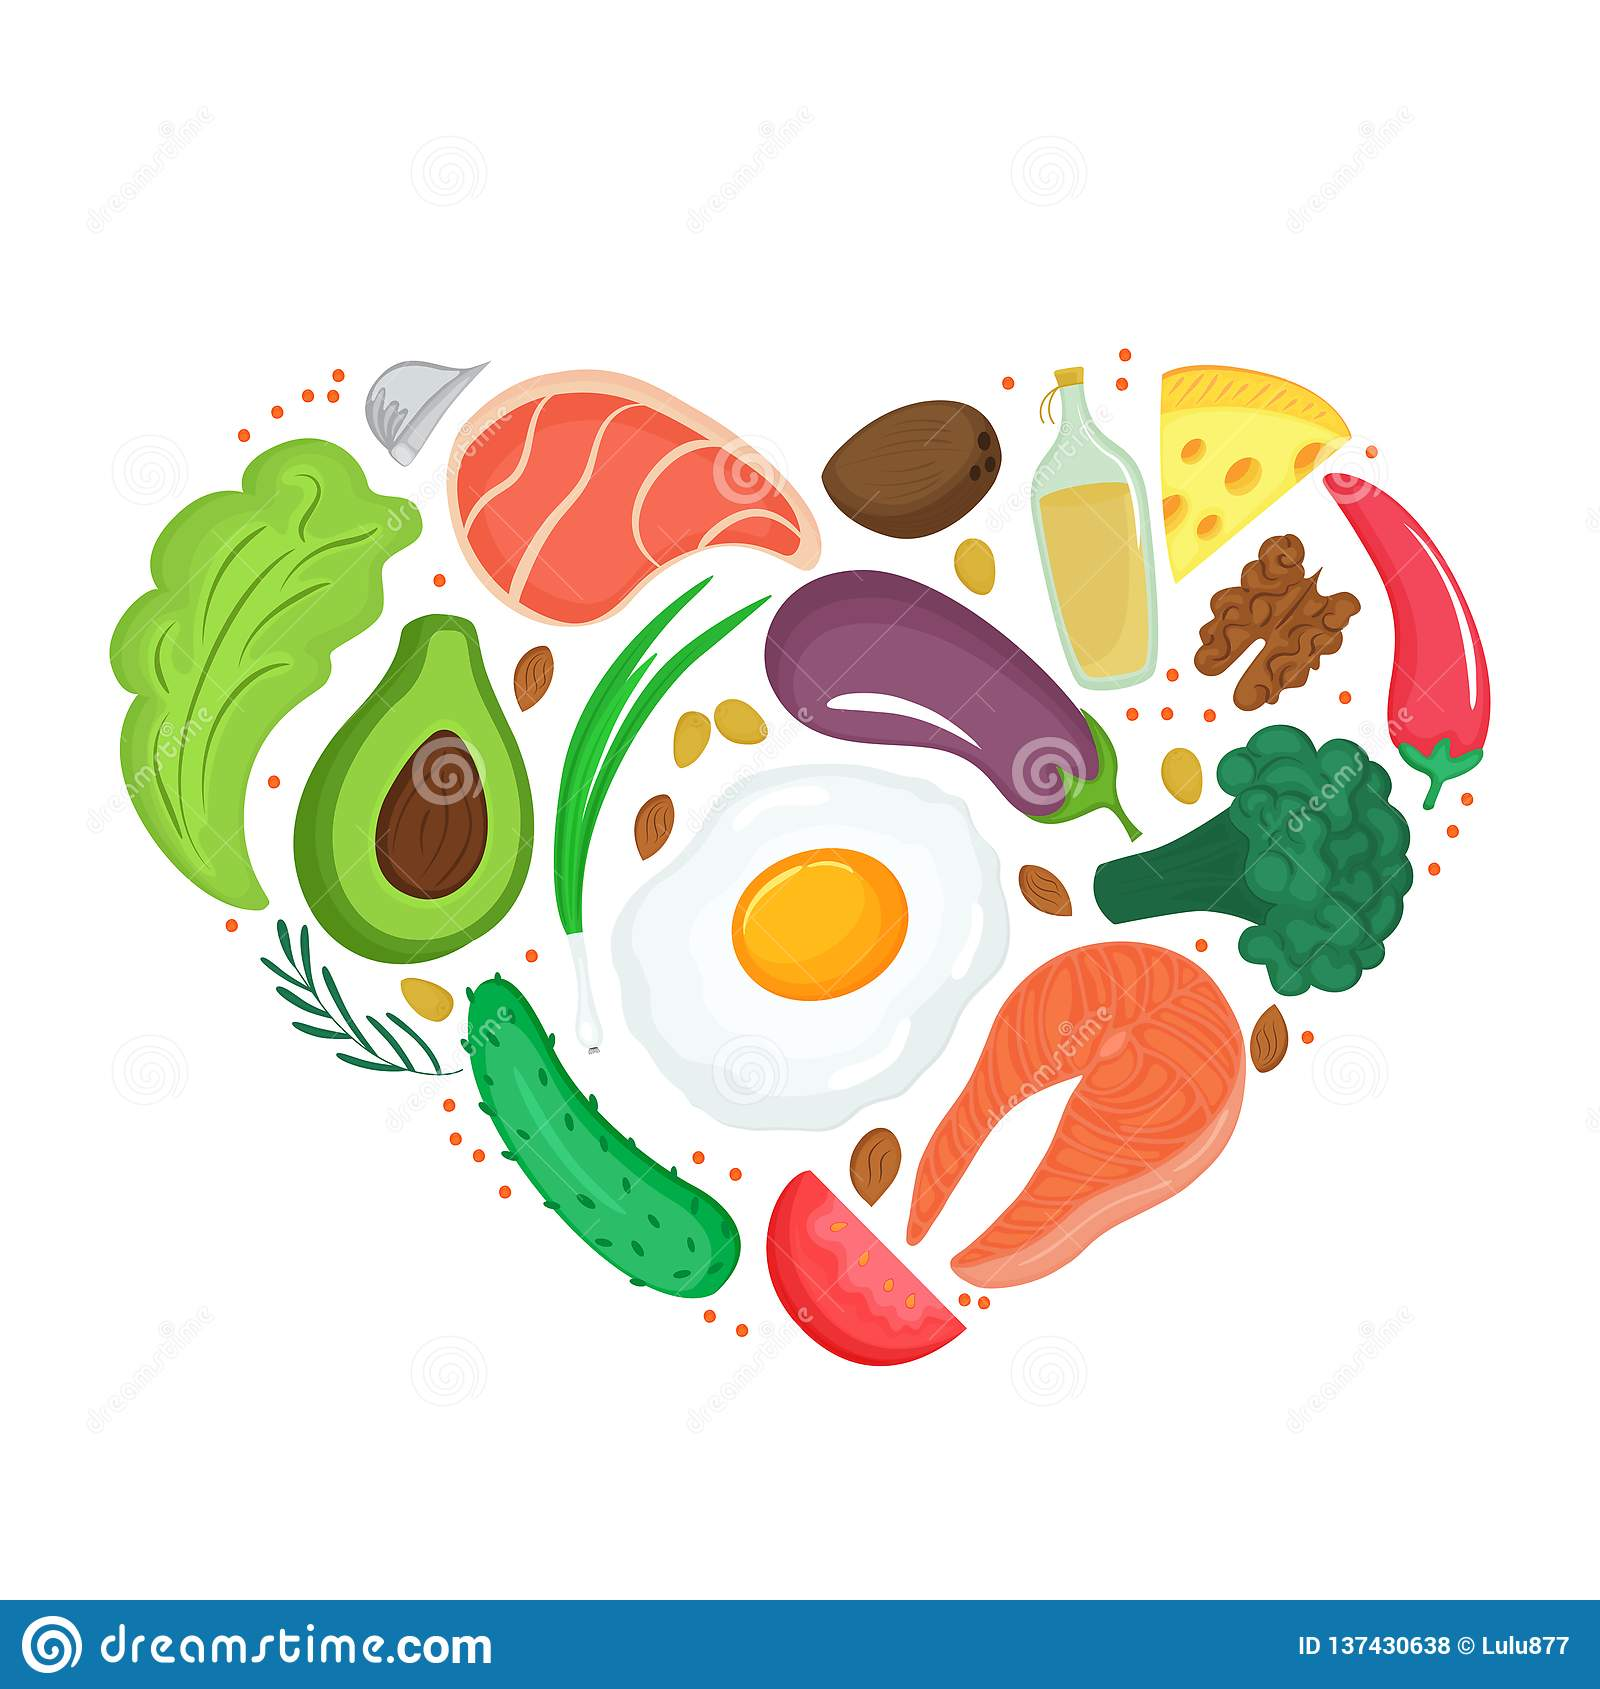 Healthy foods: vegetables, nuts, meat, fish. Heart shaped banner. Keto diet. Ketogenic nutrition